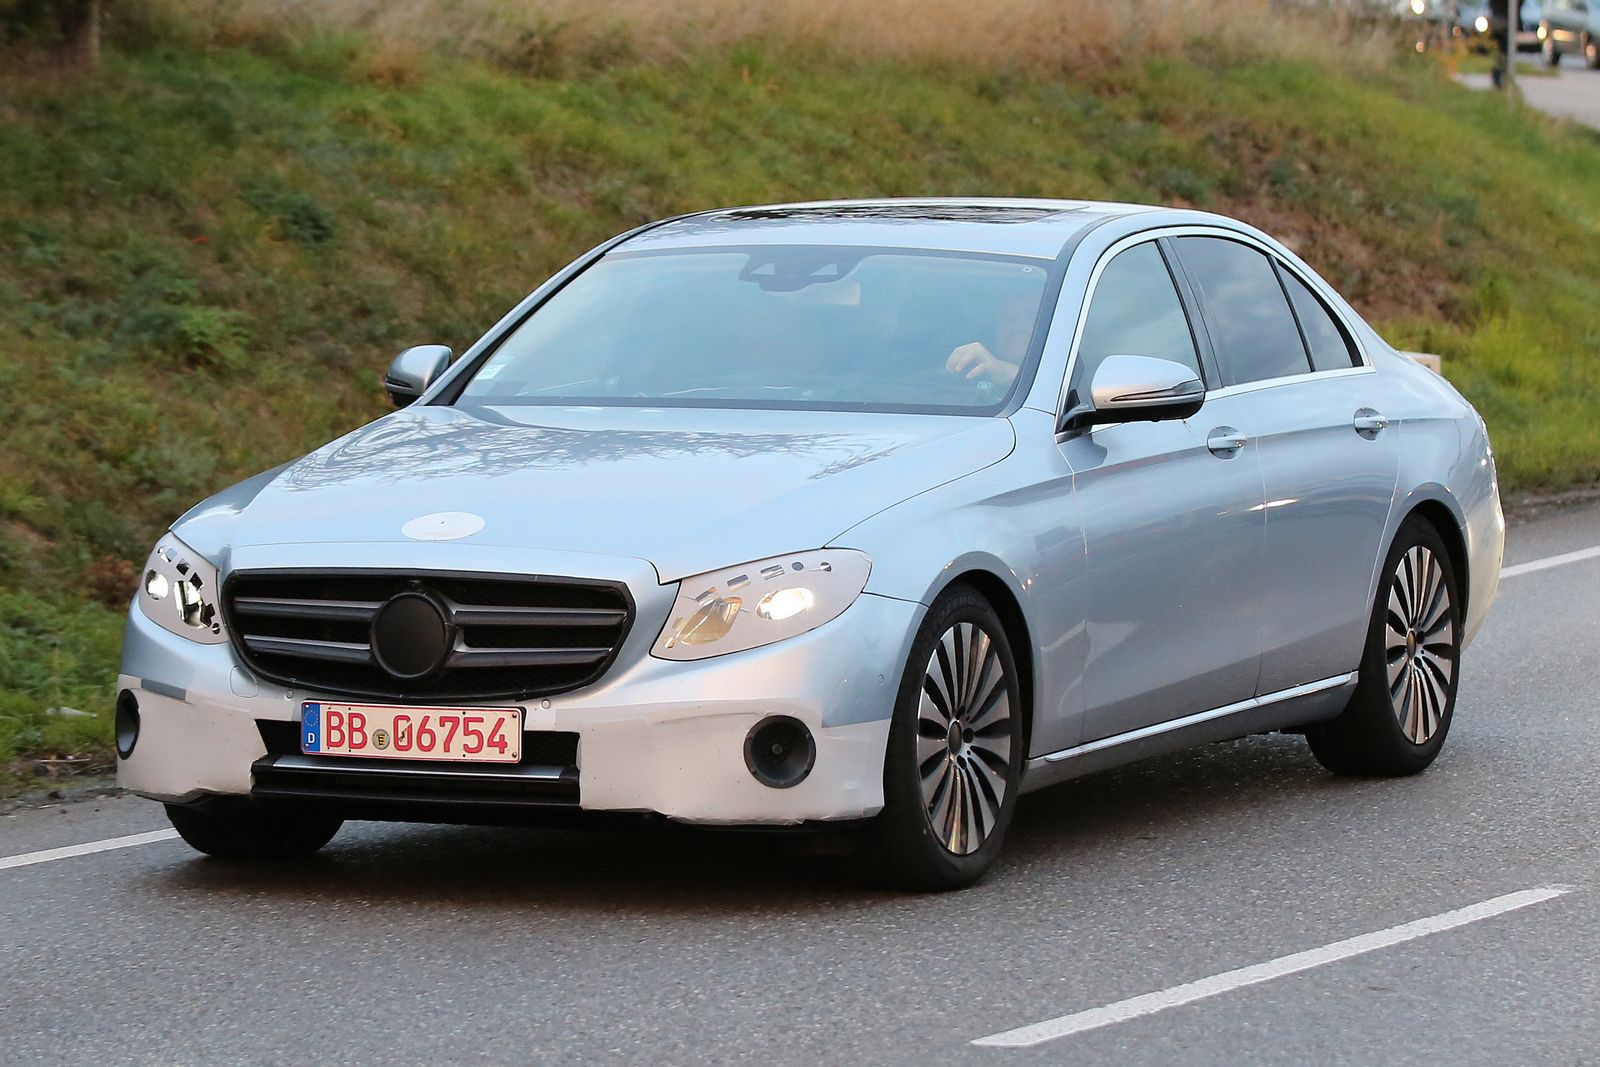 The prototype of the next-generation Mercedes-Benz E-Class spied without camouflage